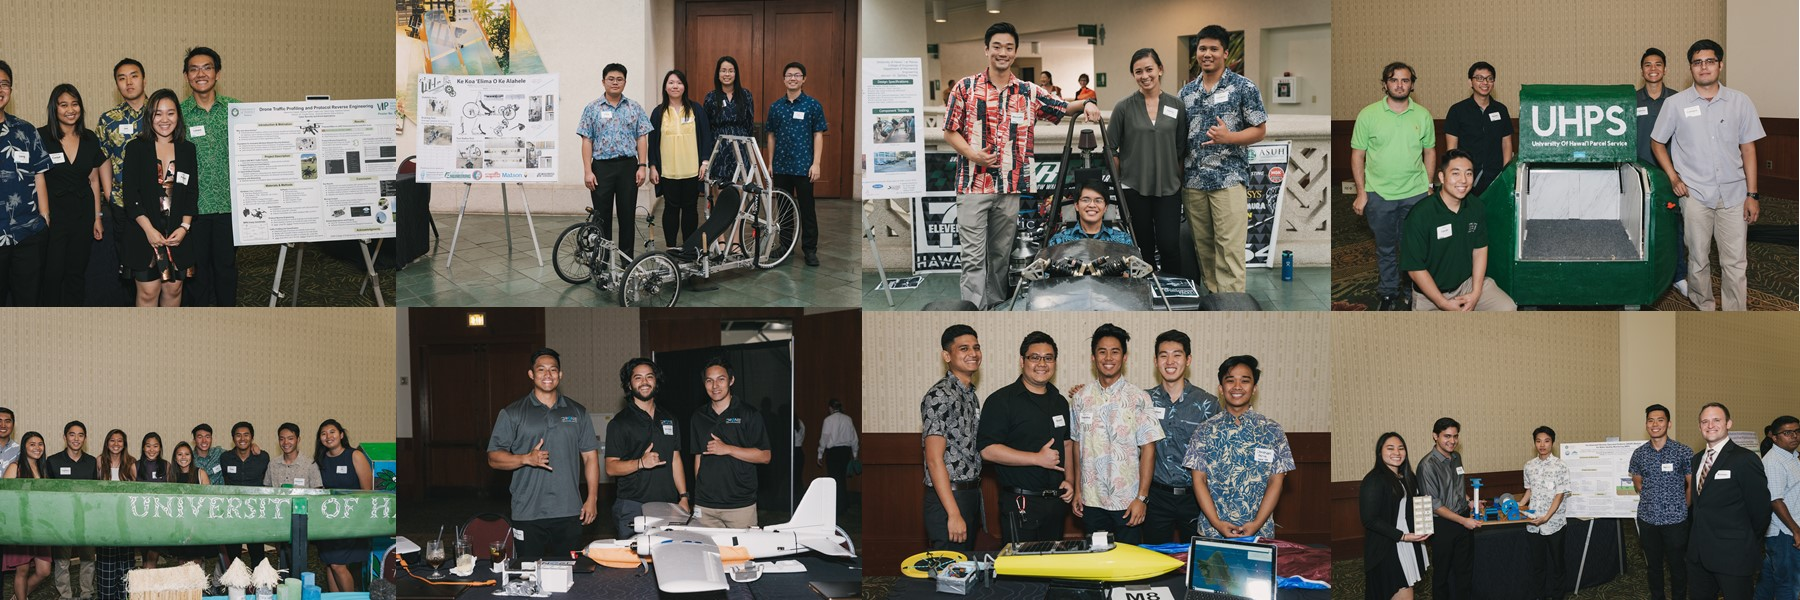 Photos Of Students Posing With Their Research Projects.